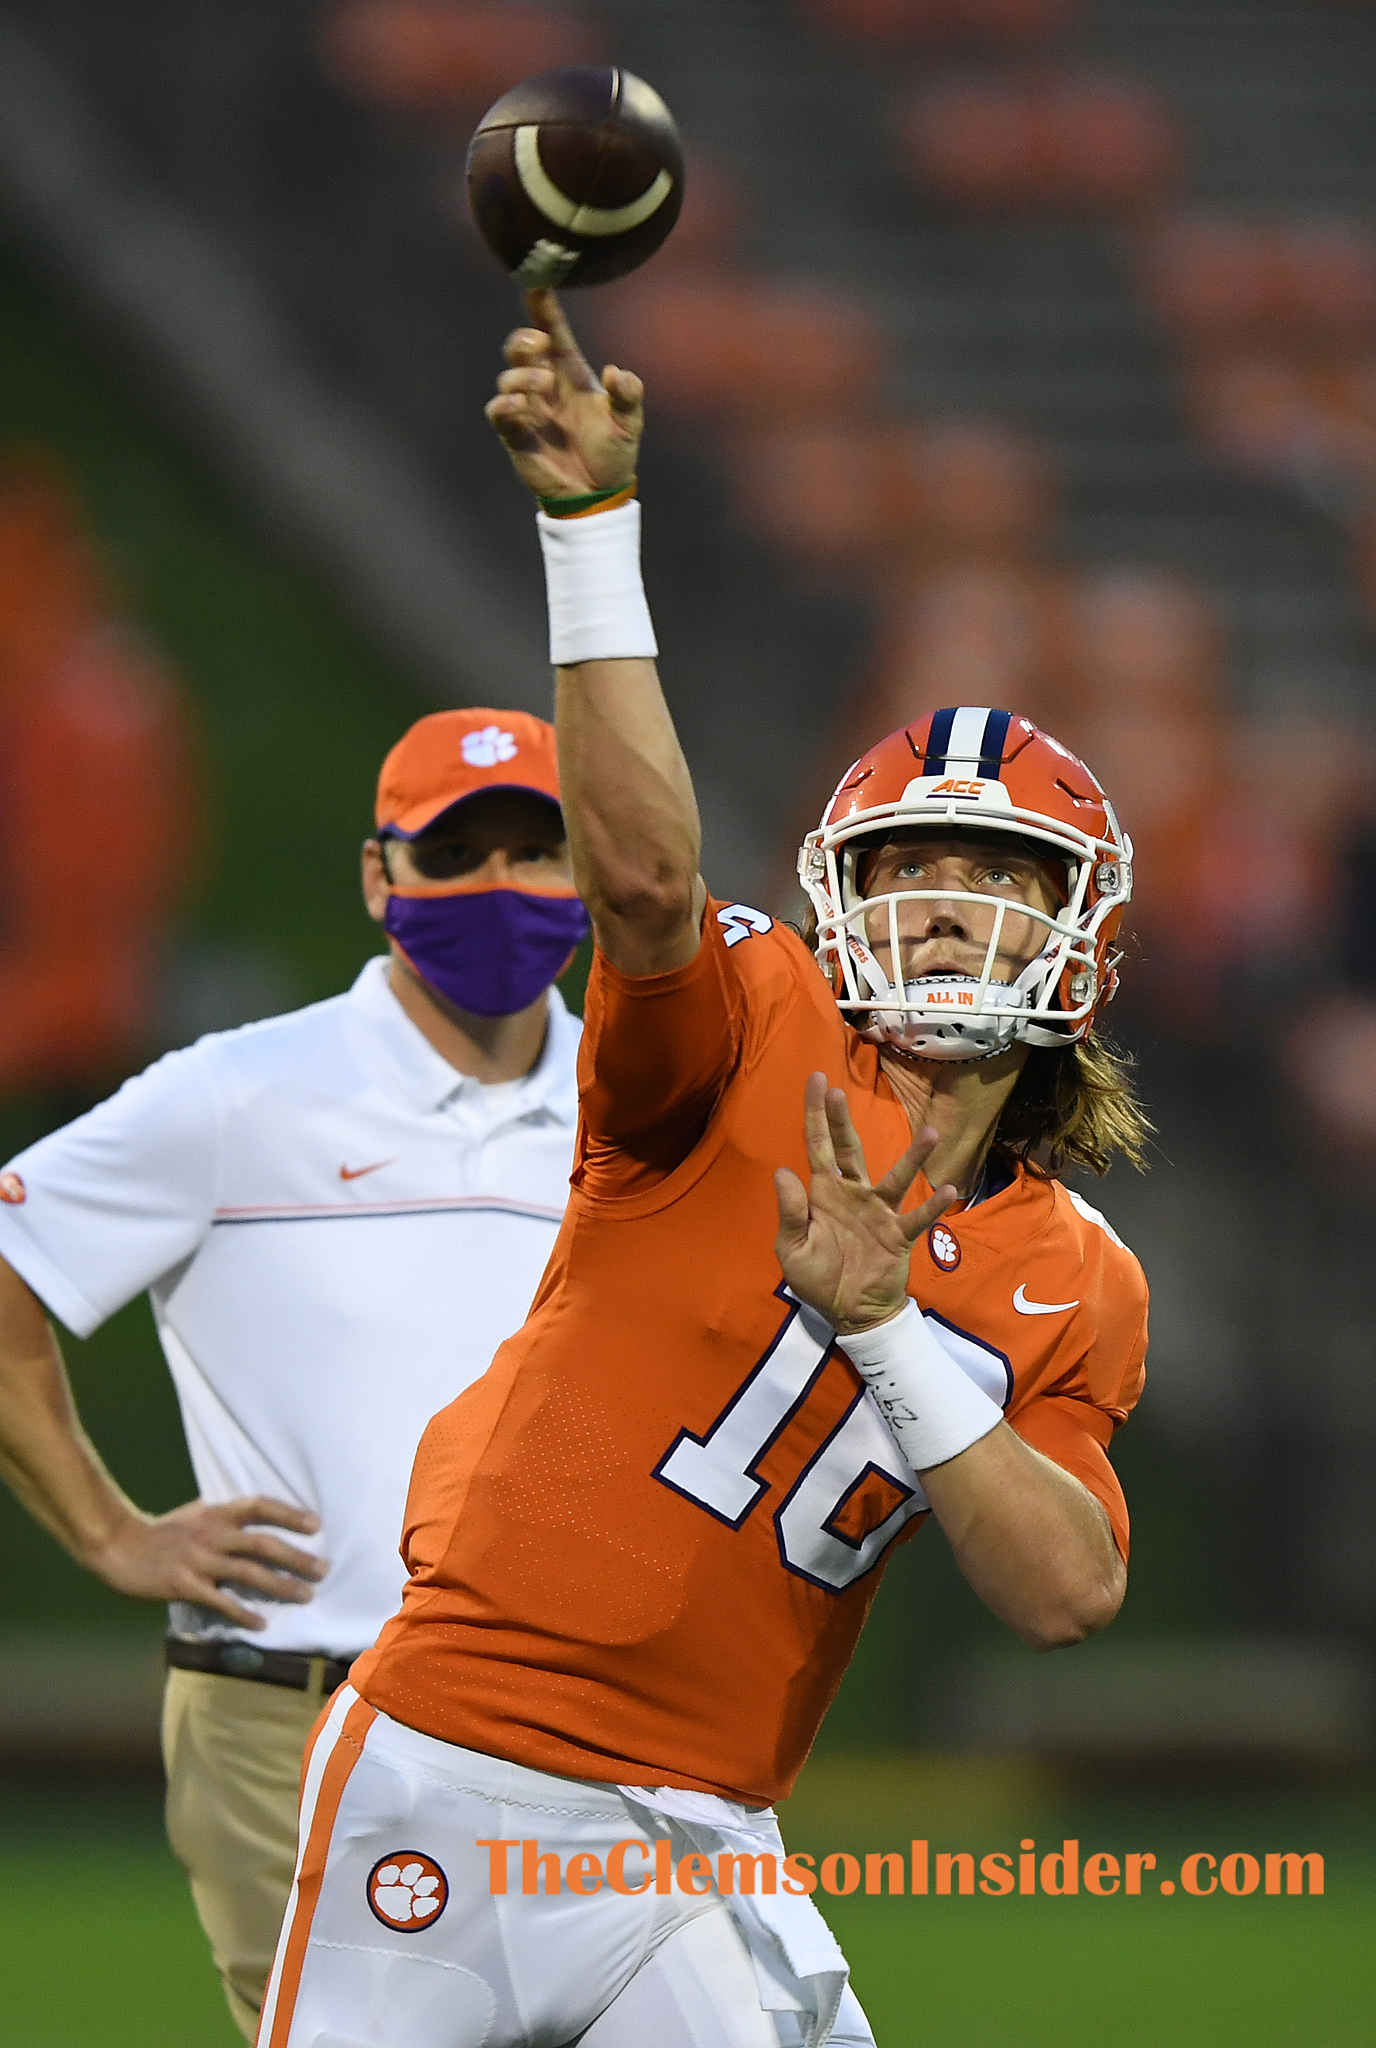 Clemson quarterback Trevor Lawrence (16) during pregame of Clemson's game against the University of Miami at Clemson's Memorial Stadium Saturday, October 10, 2020. Bart Boatwright/The Clemson Insider